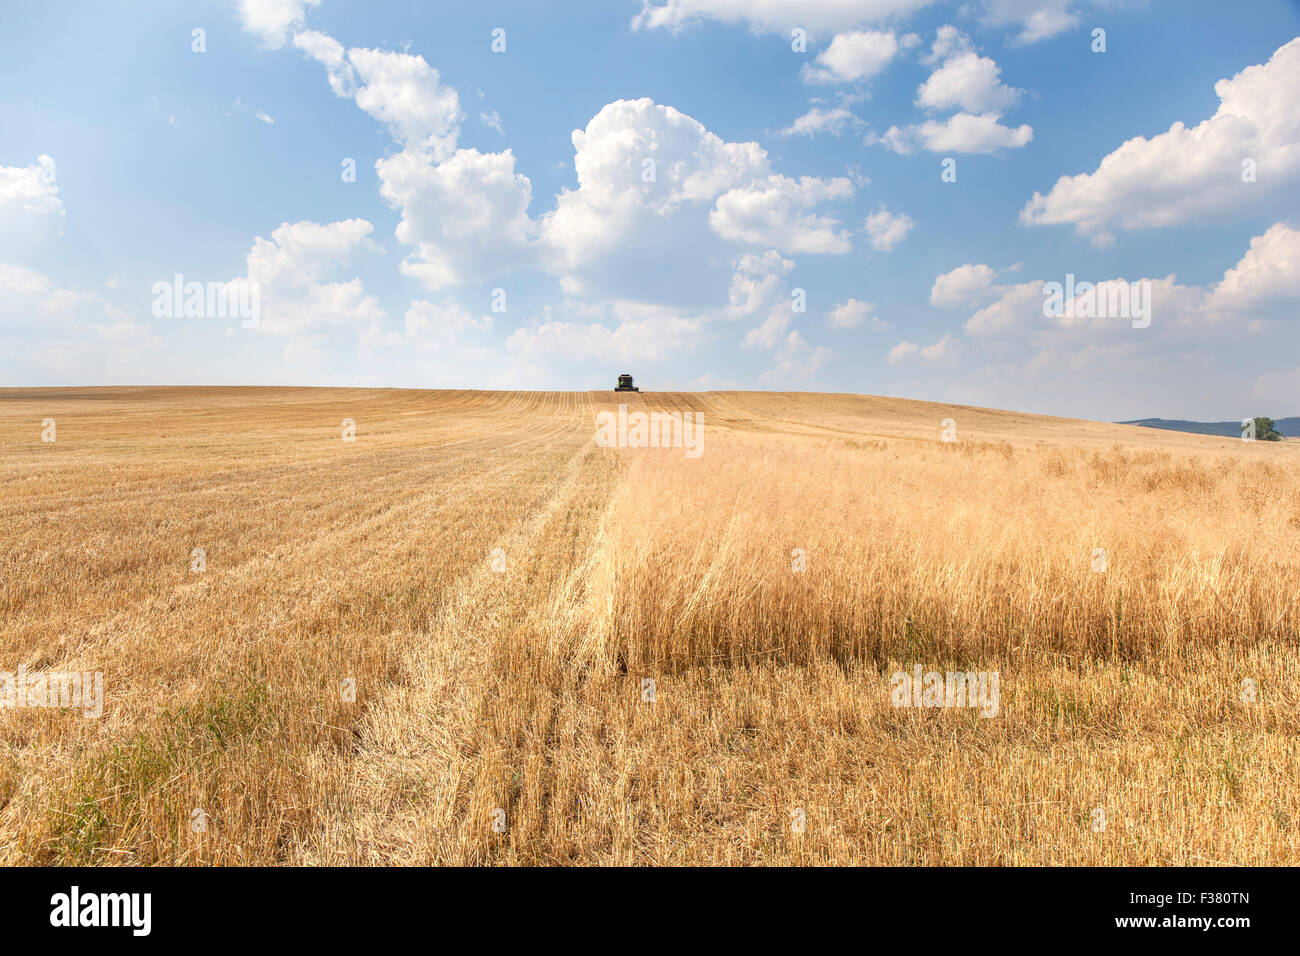 Rural landscape with a harvester reaping a wide wheat field in a hot summer day. The machine is moving directly - Stock Image